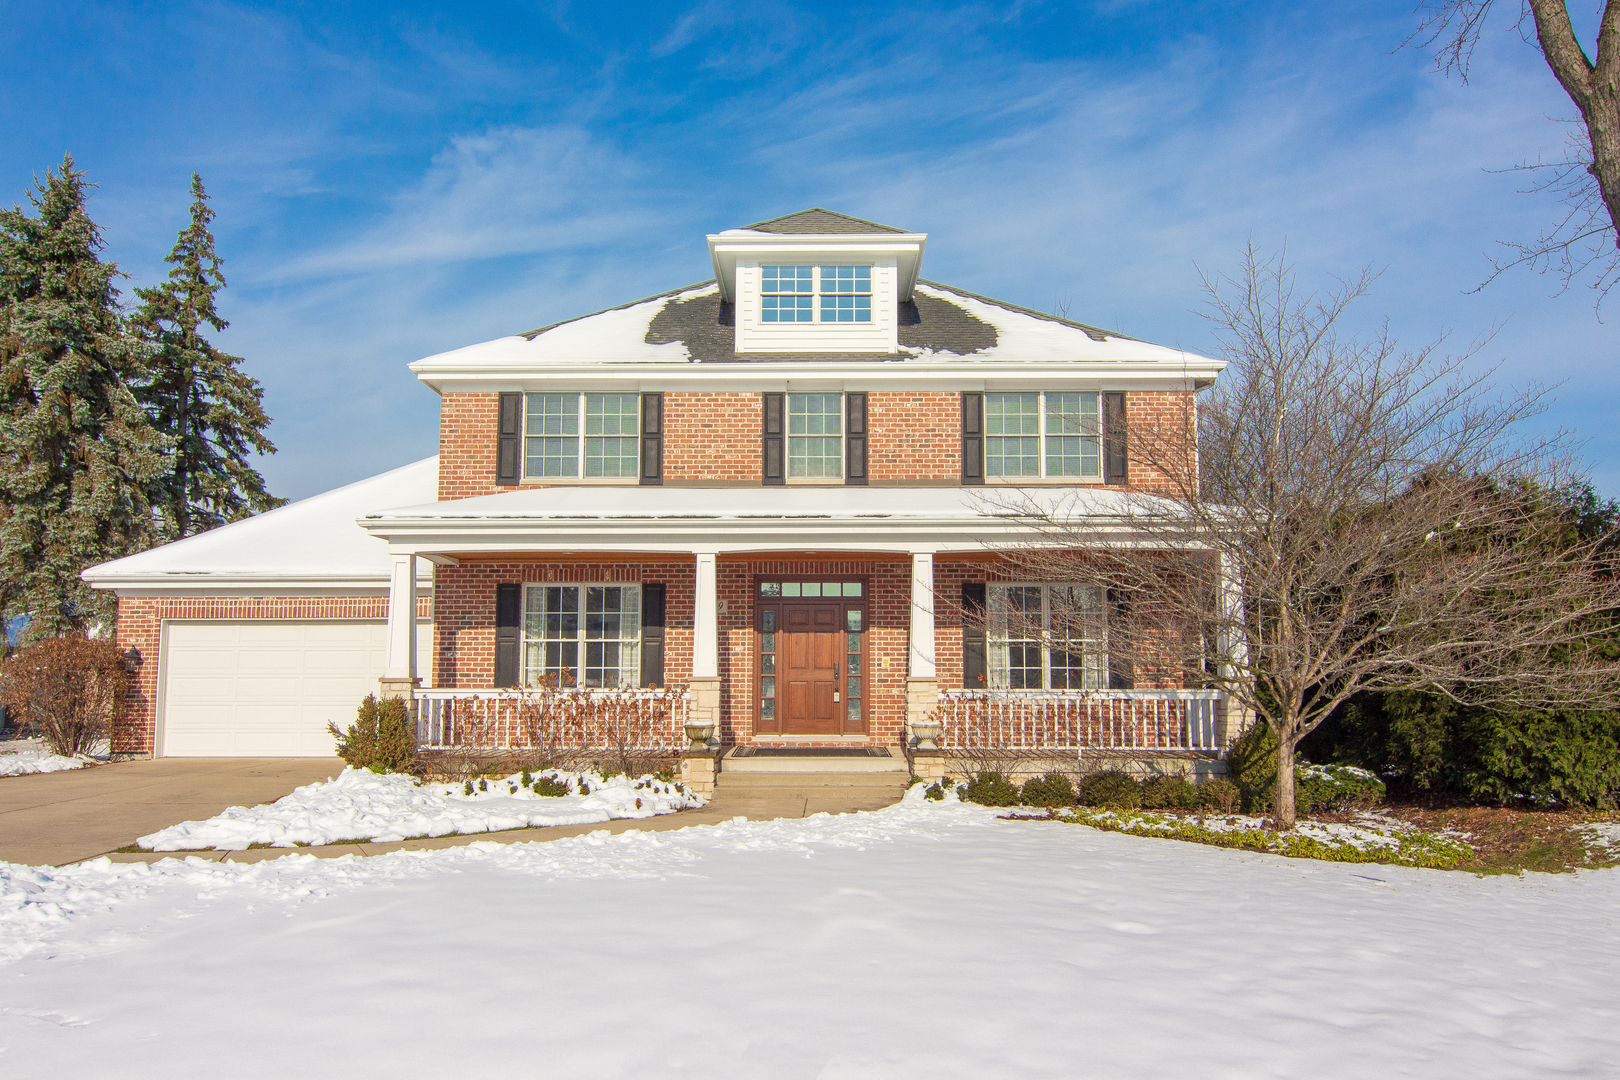 529 West 56th Street, Hinsdale, Illinois 60521